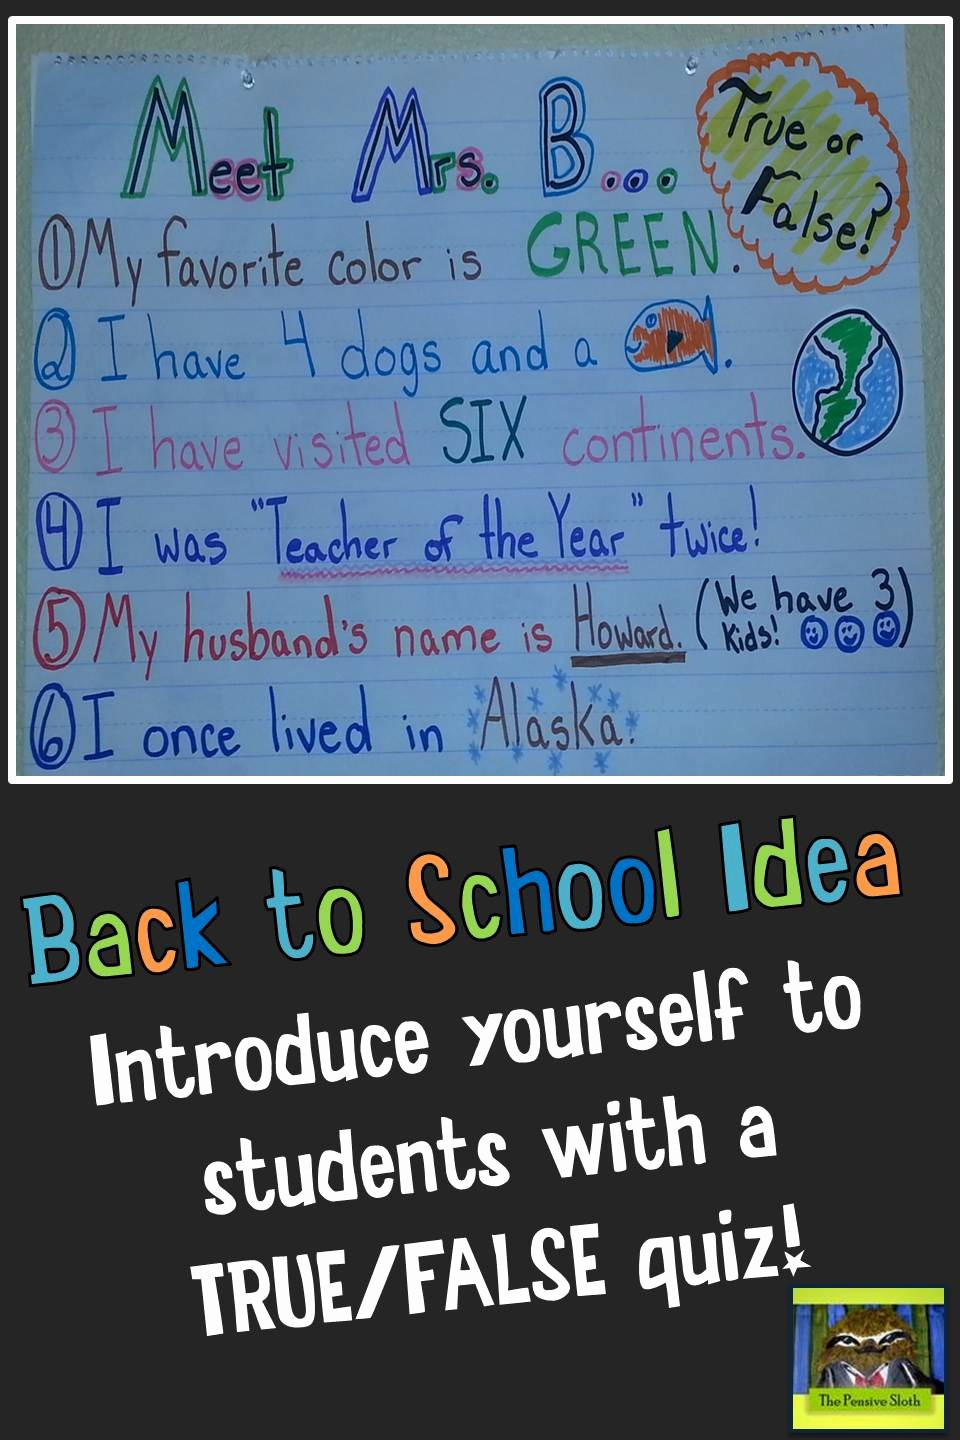 Create True or False Quiz Fresh Introduce Yourself to Students with A Back to School Quiz